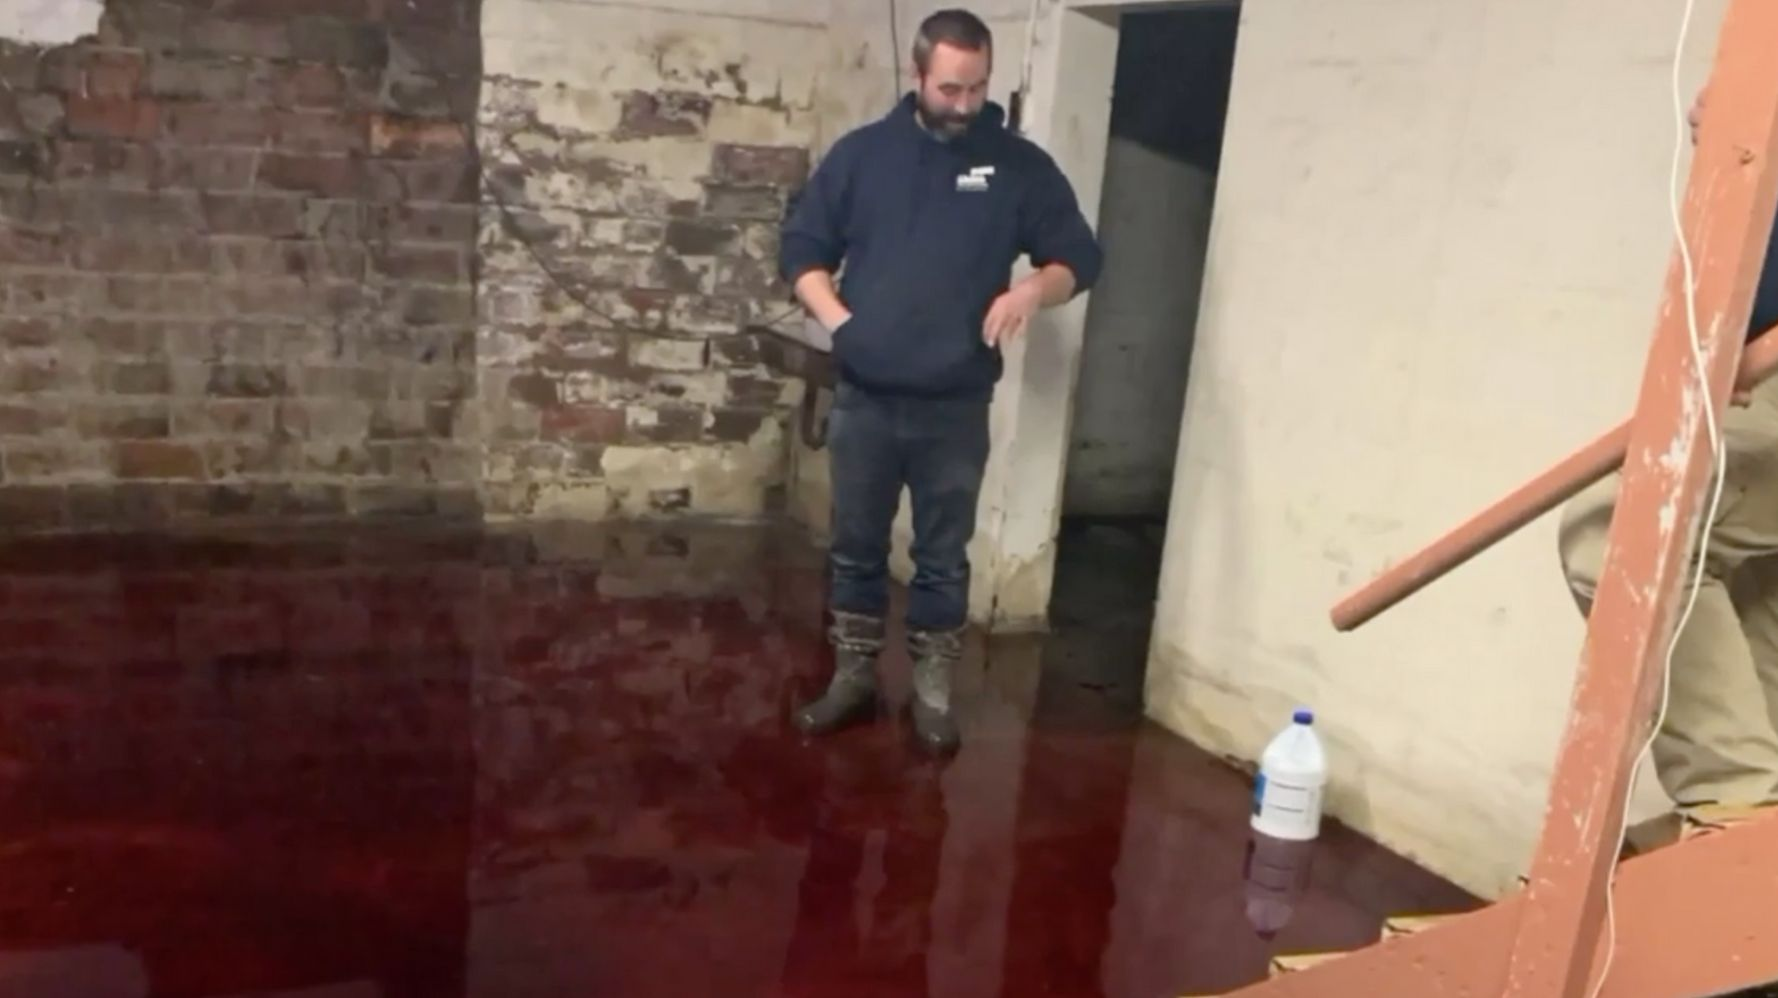 Westlake Legal Group 5da891c32000000210505fe9 Iowa Family's Basement Is Soaked With 5 Inches Of Animal Blood